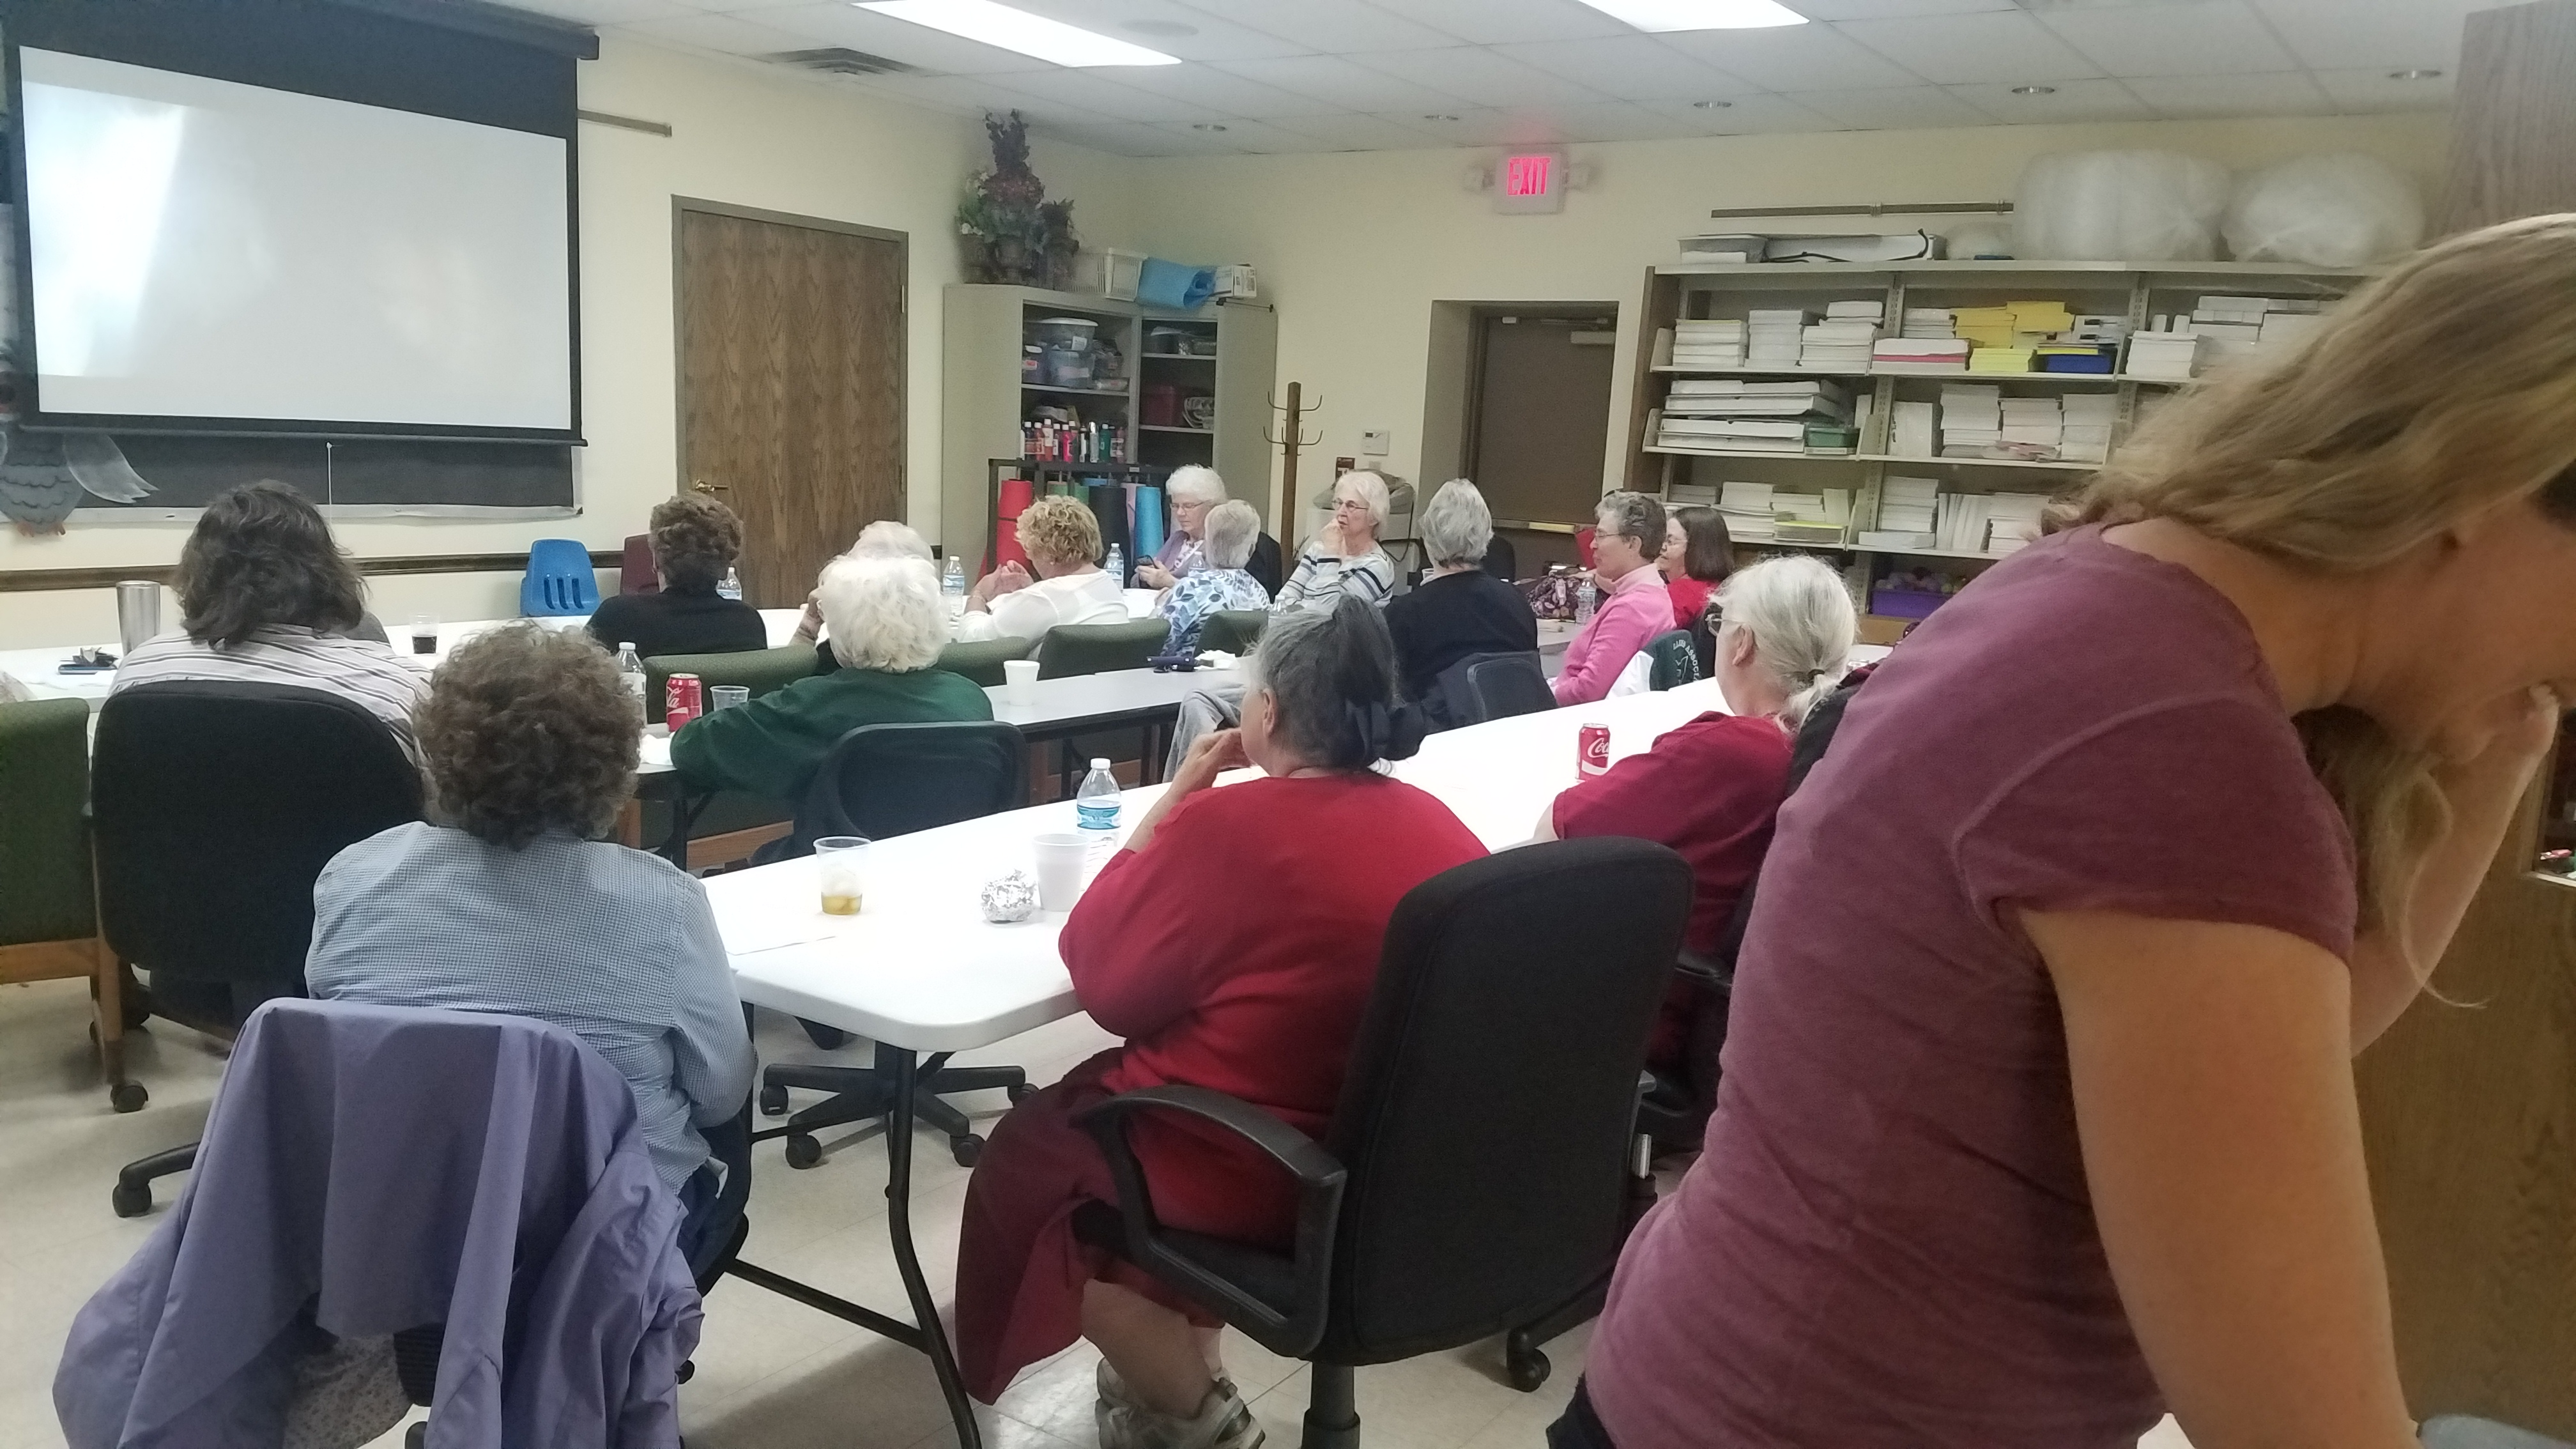 April's Ladies Night Out program proved very popular, with around 30 people in attendance.